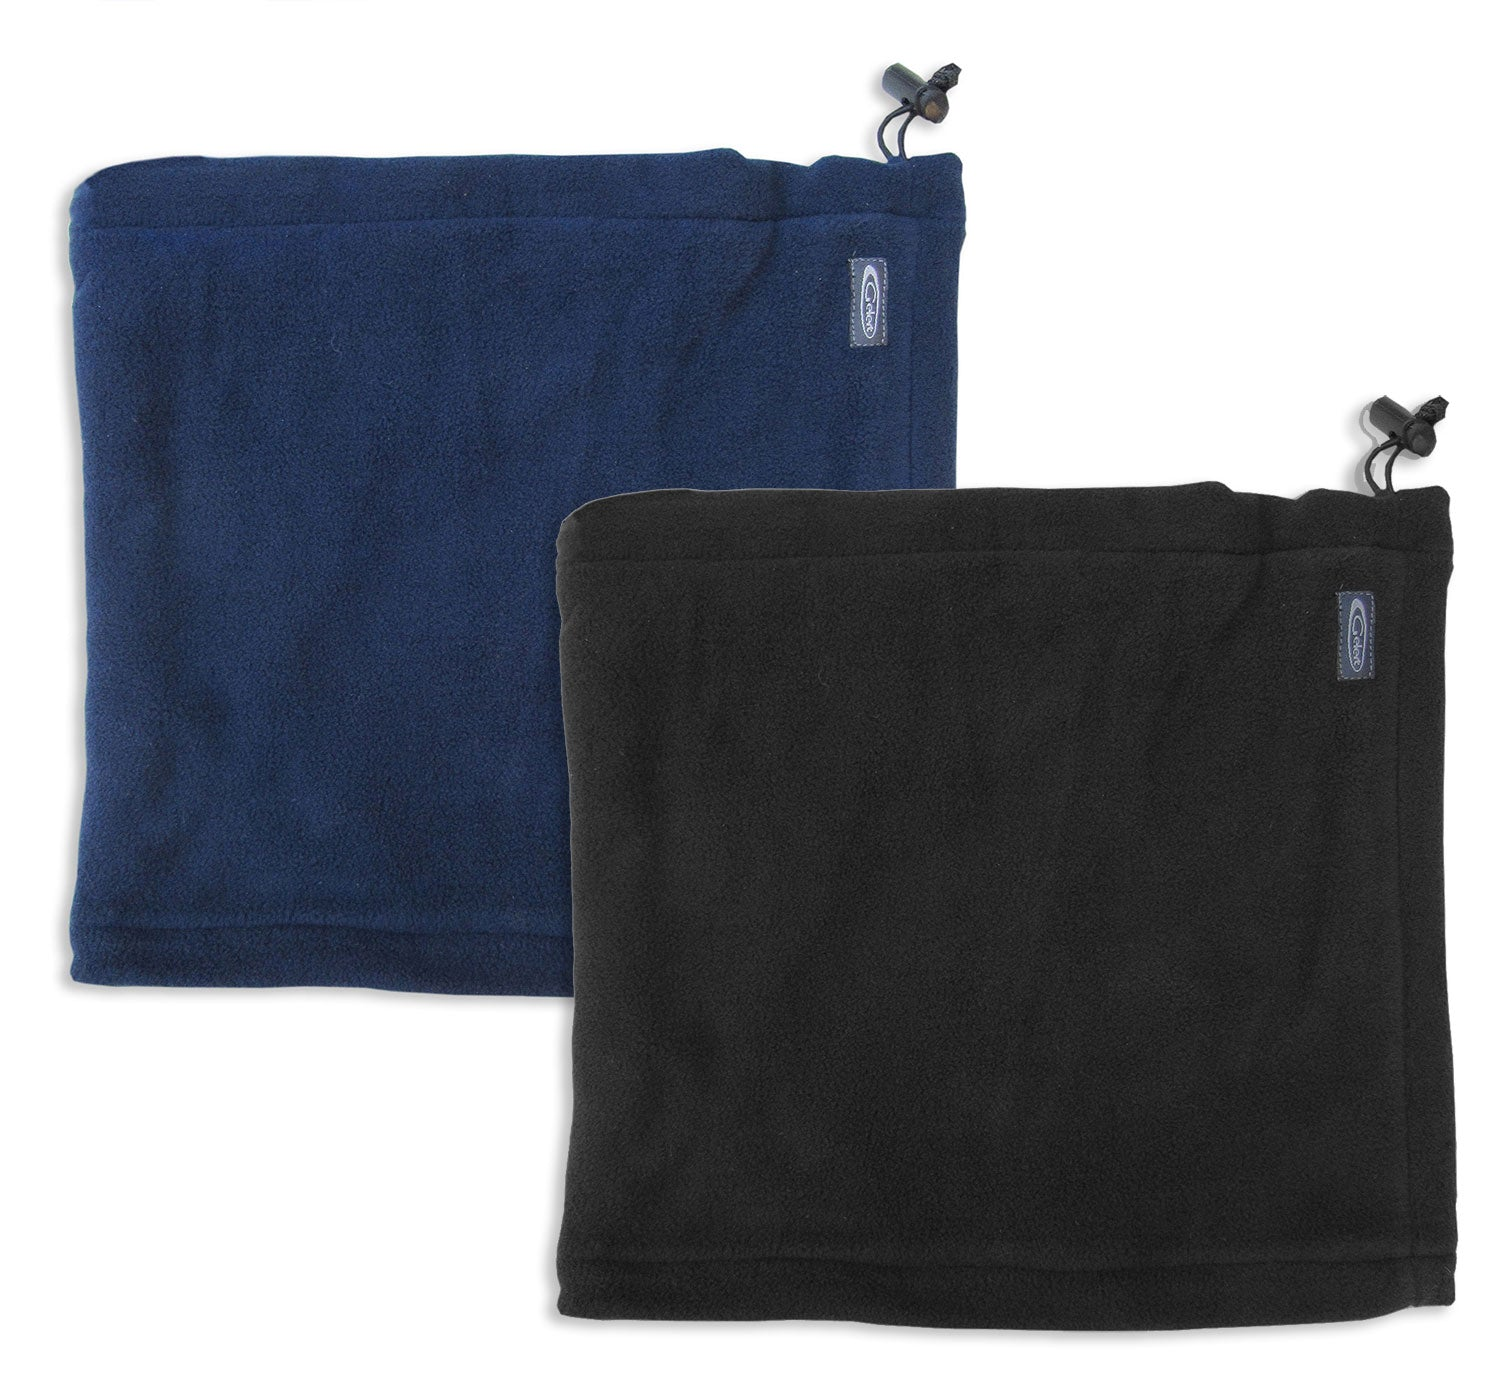 Gelert Fleece Neck Warmer | Black, NAvy